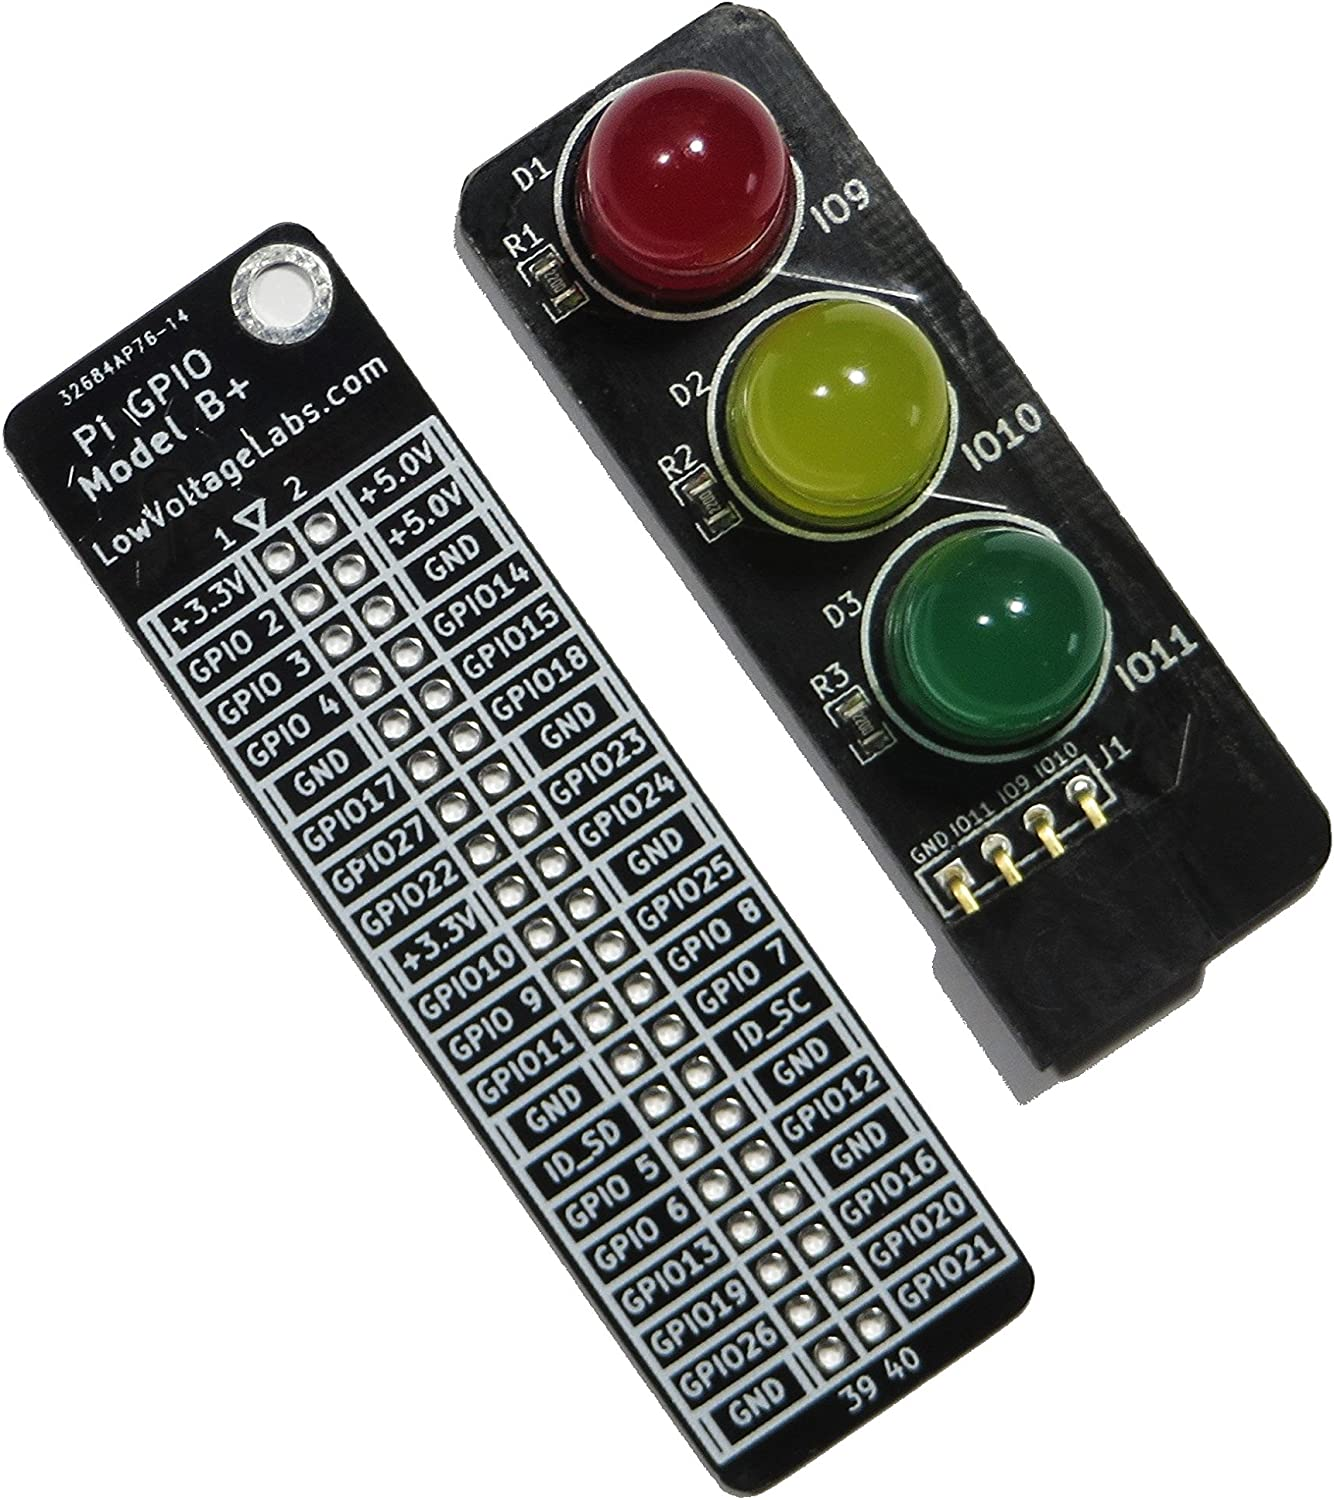 Raspberry Pi Traffic Light and Year-end gift Super sale GPIO reference f board combo pack